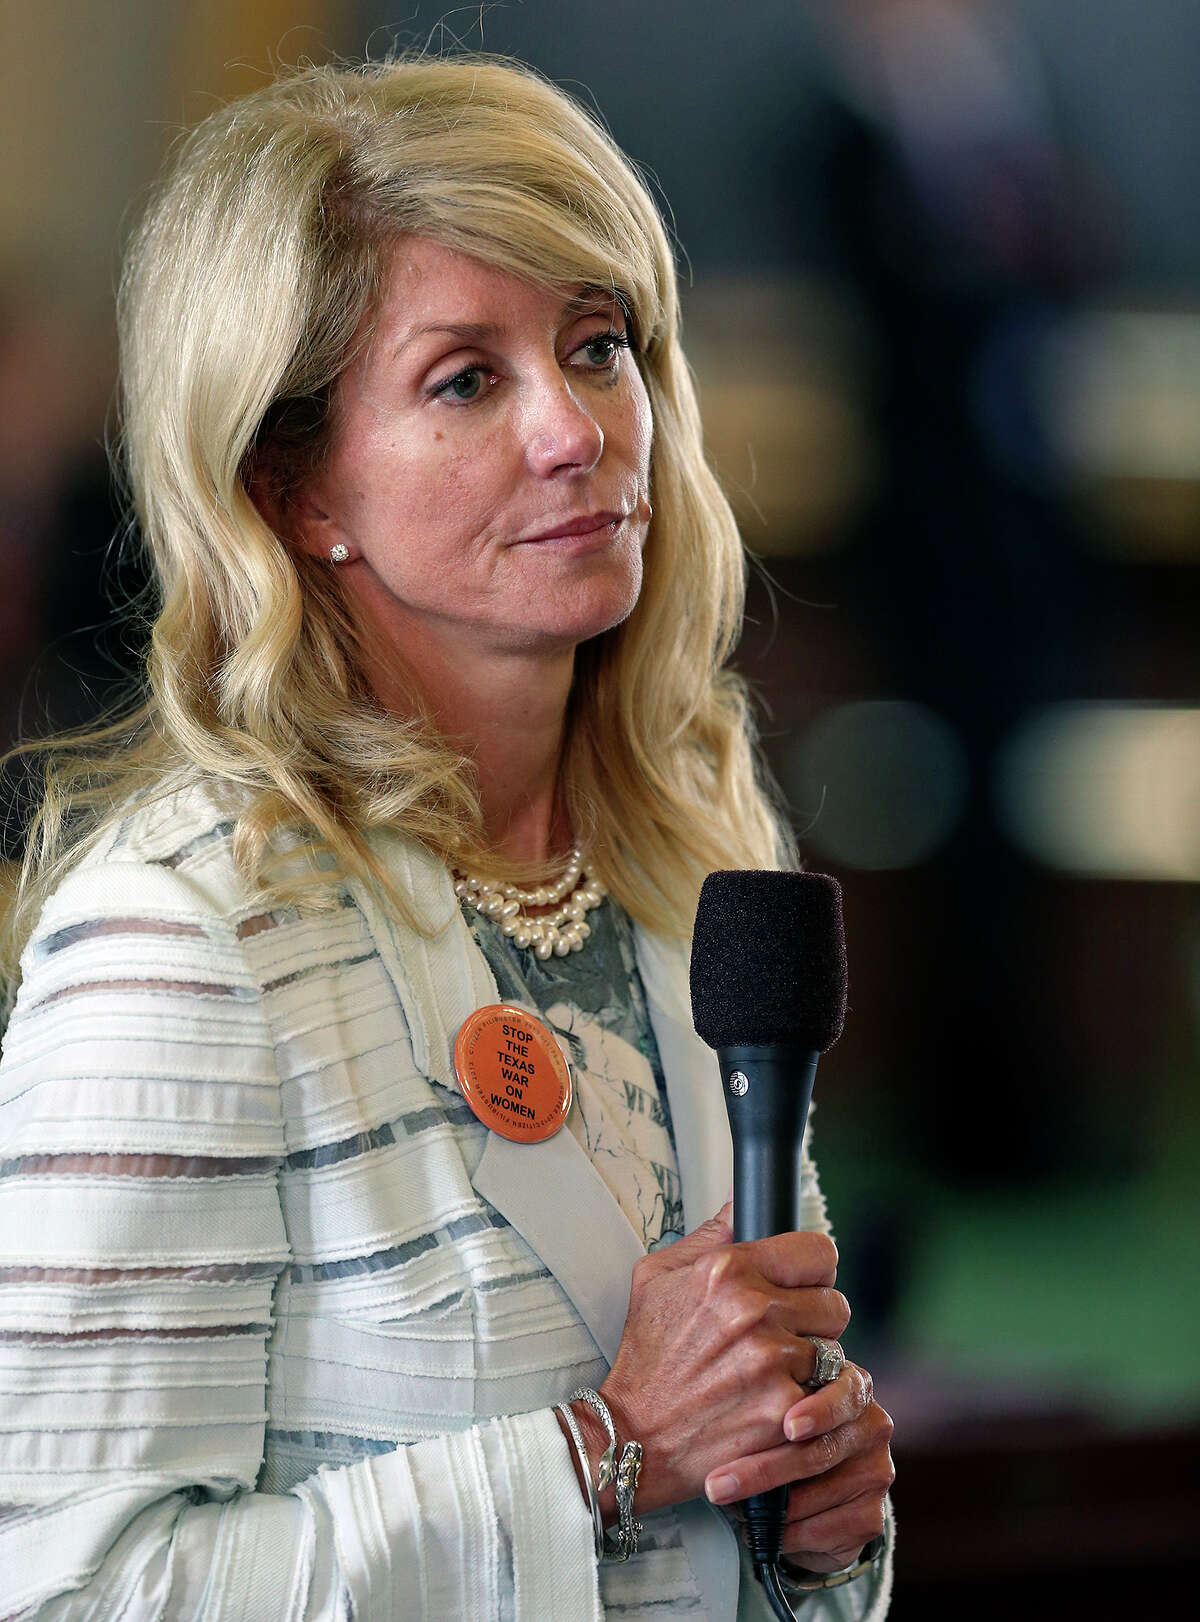 Fort Worth Senator Wendy Davis shows signs of fatigue as she filibusters in an effort to cause abortion legislation to die without a vote on the floor of the Senate Tuesday, June 25, 2013.